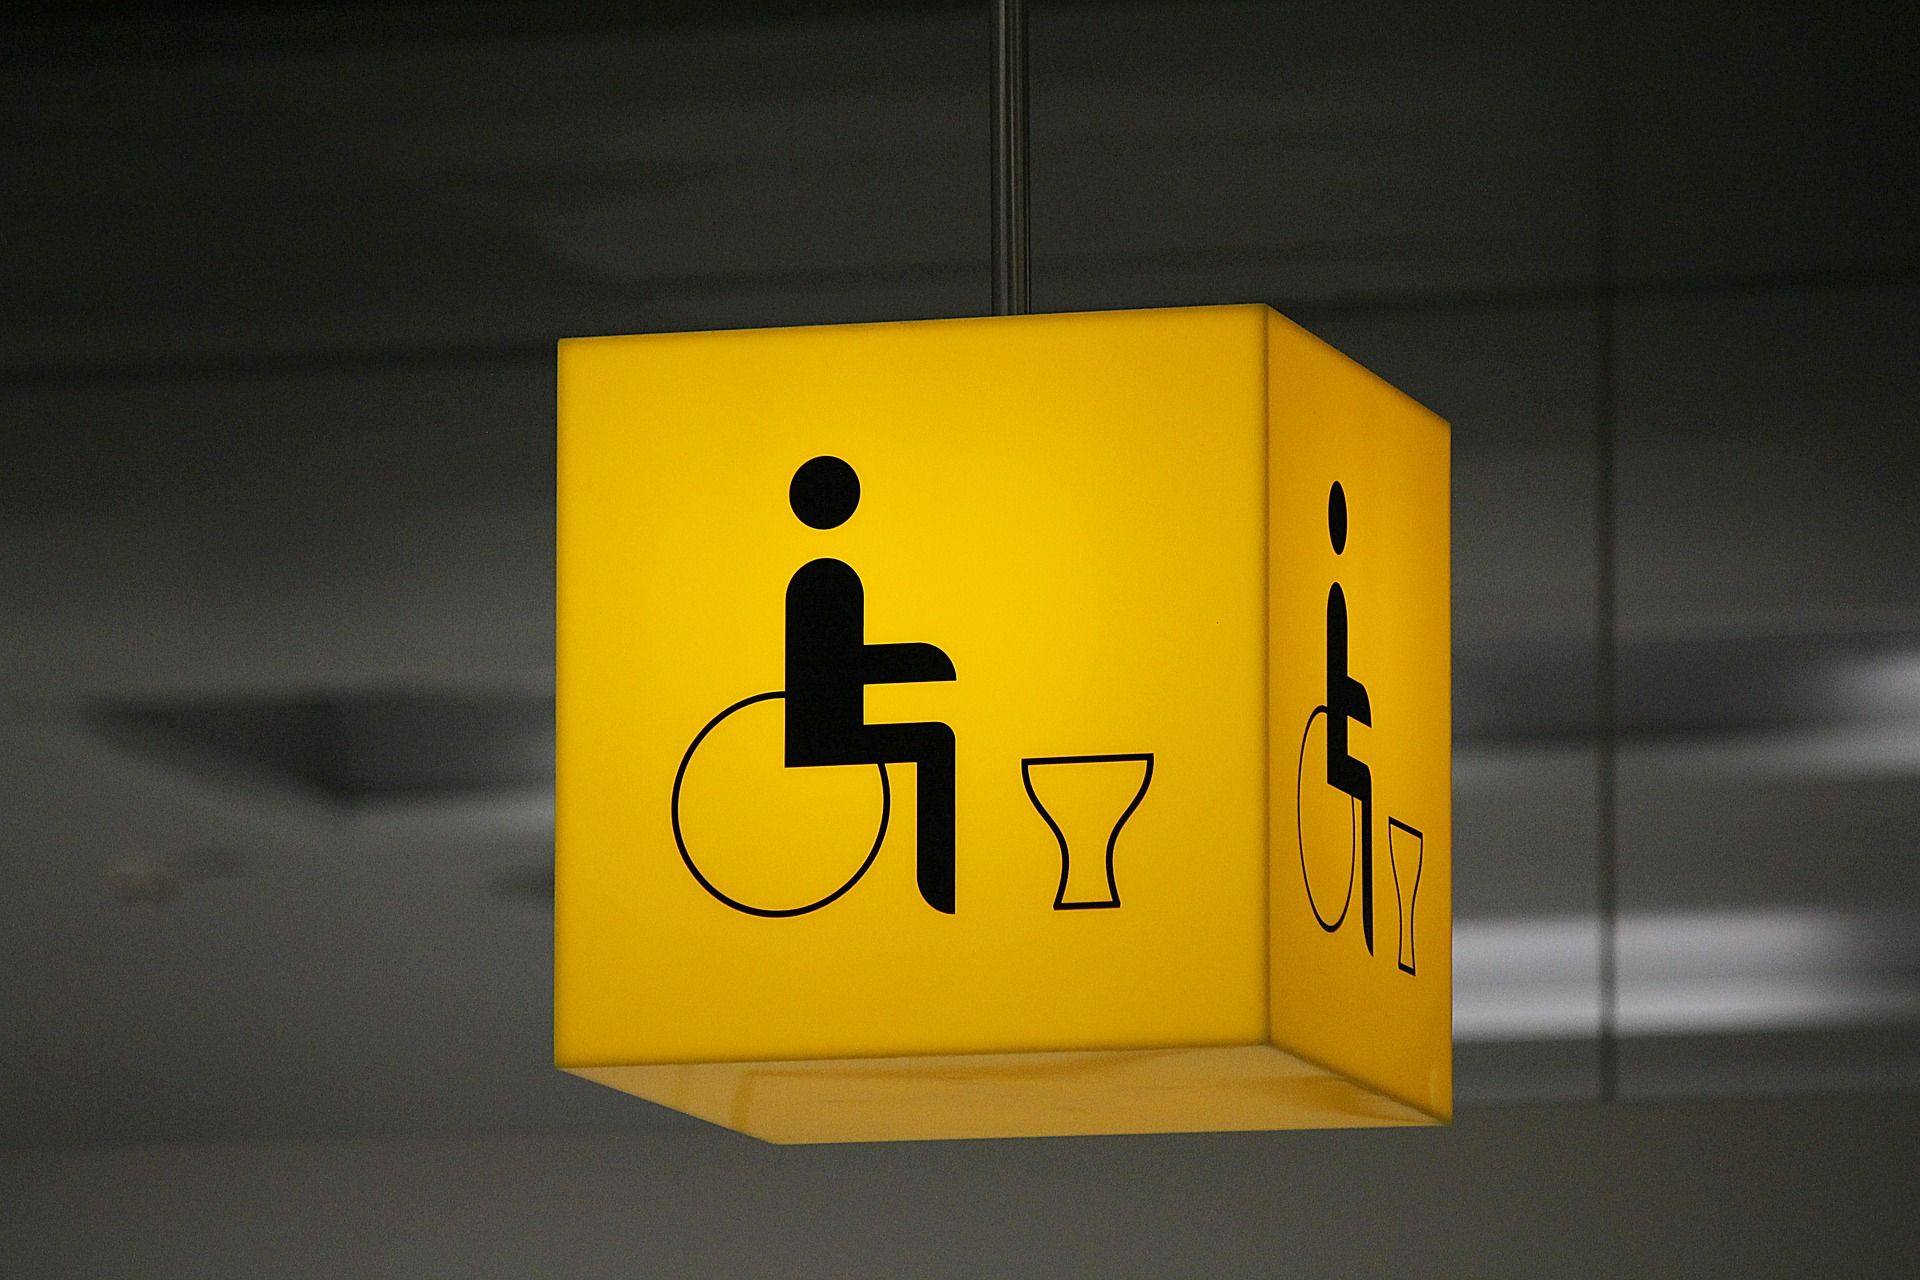 accessible signage - accessible spaces